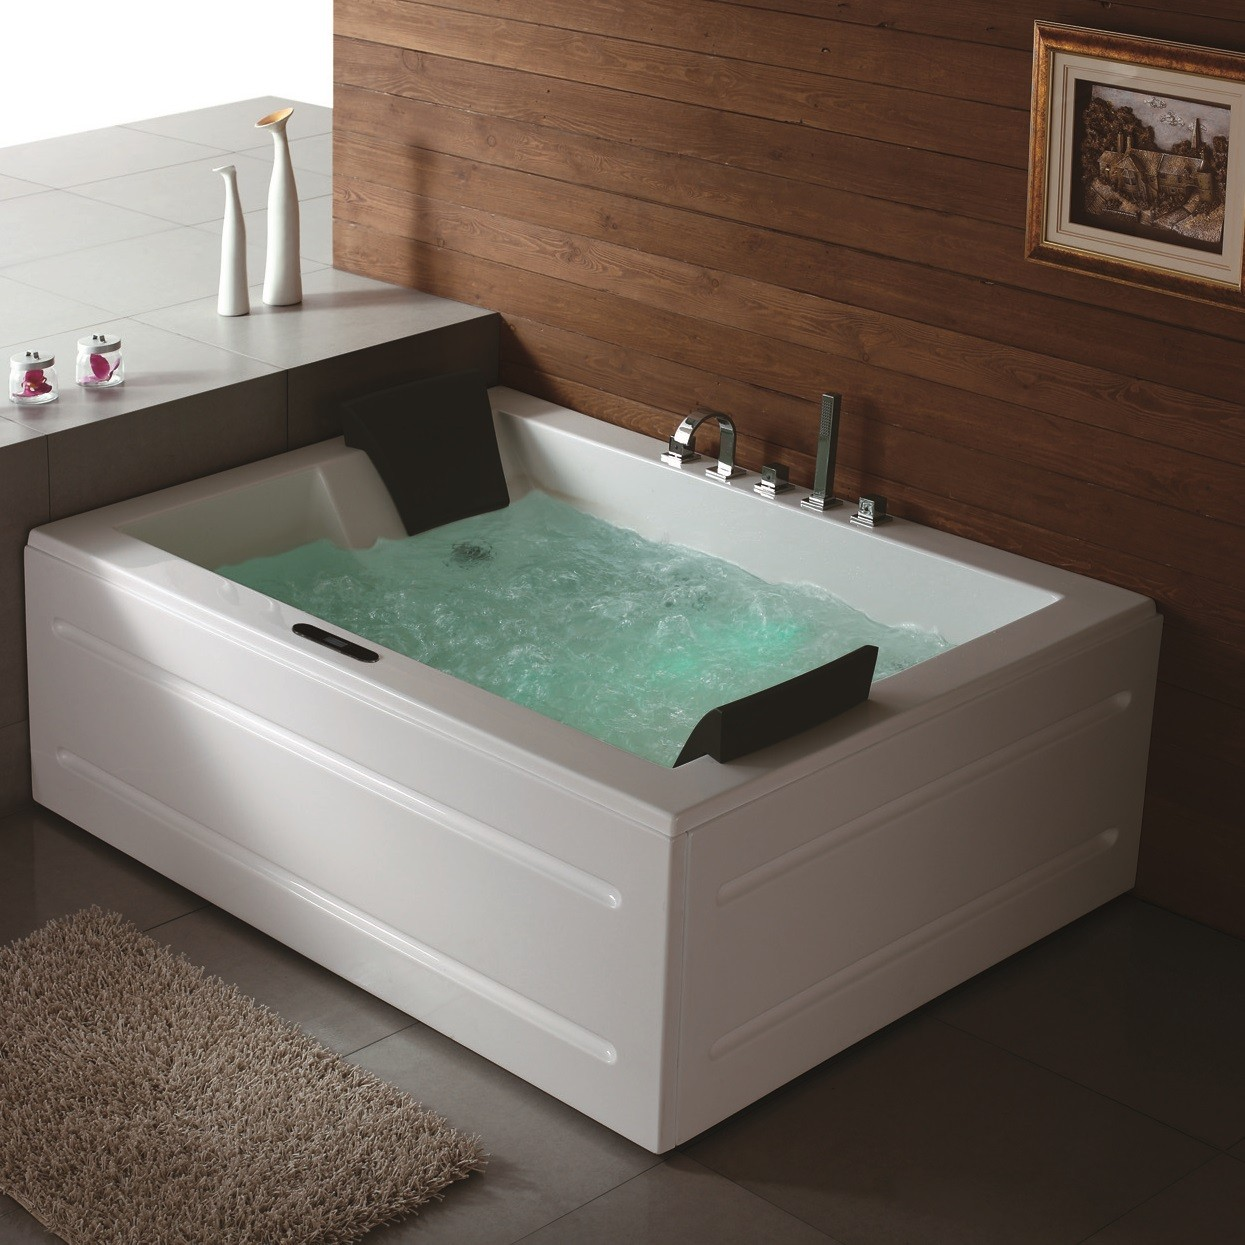 whirlpool bathtub. Astoria Luxury Whirlpool Tub All Bathtubs  Bathroom Corner Bath